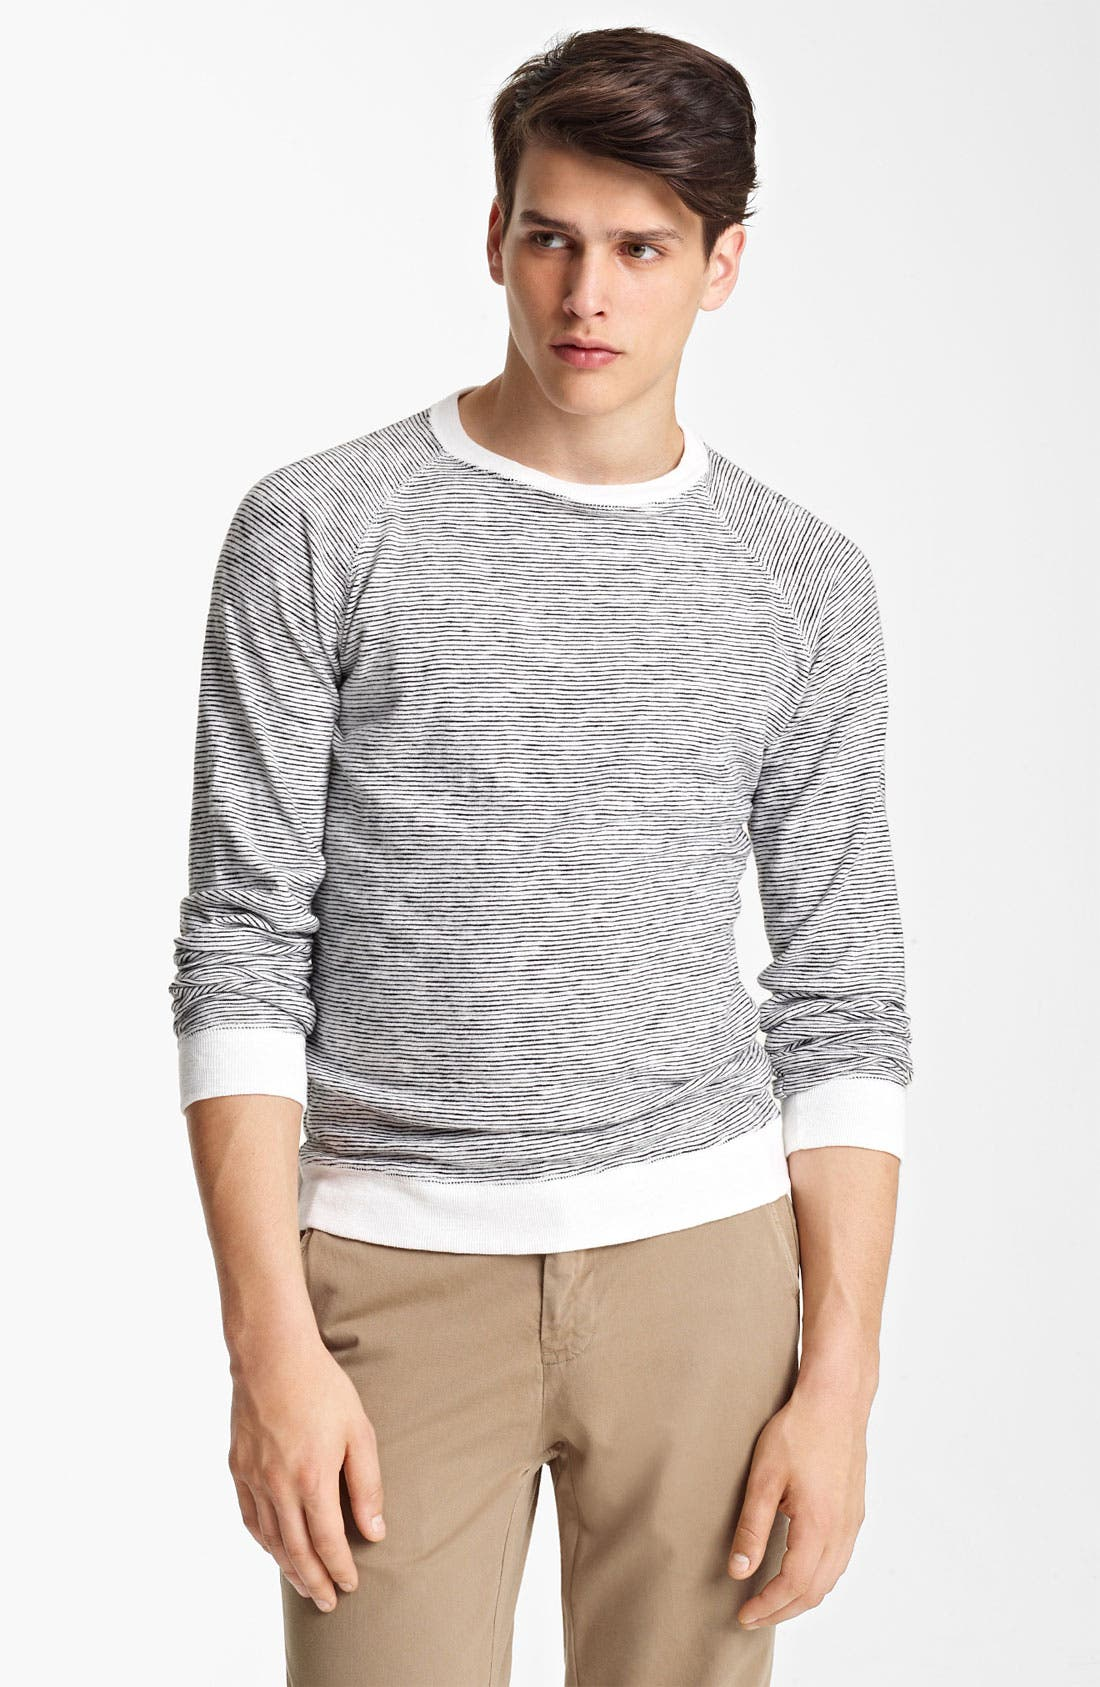 Alternate Image 1 Selected - Billy Reid Stripe Crewneck Sweatshirt